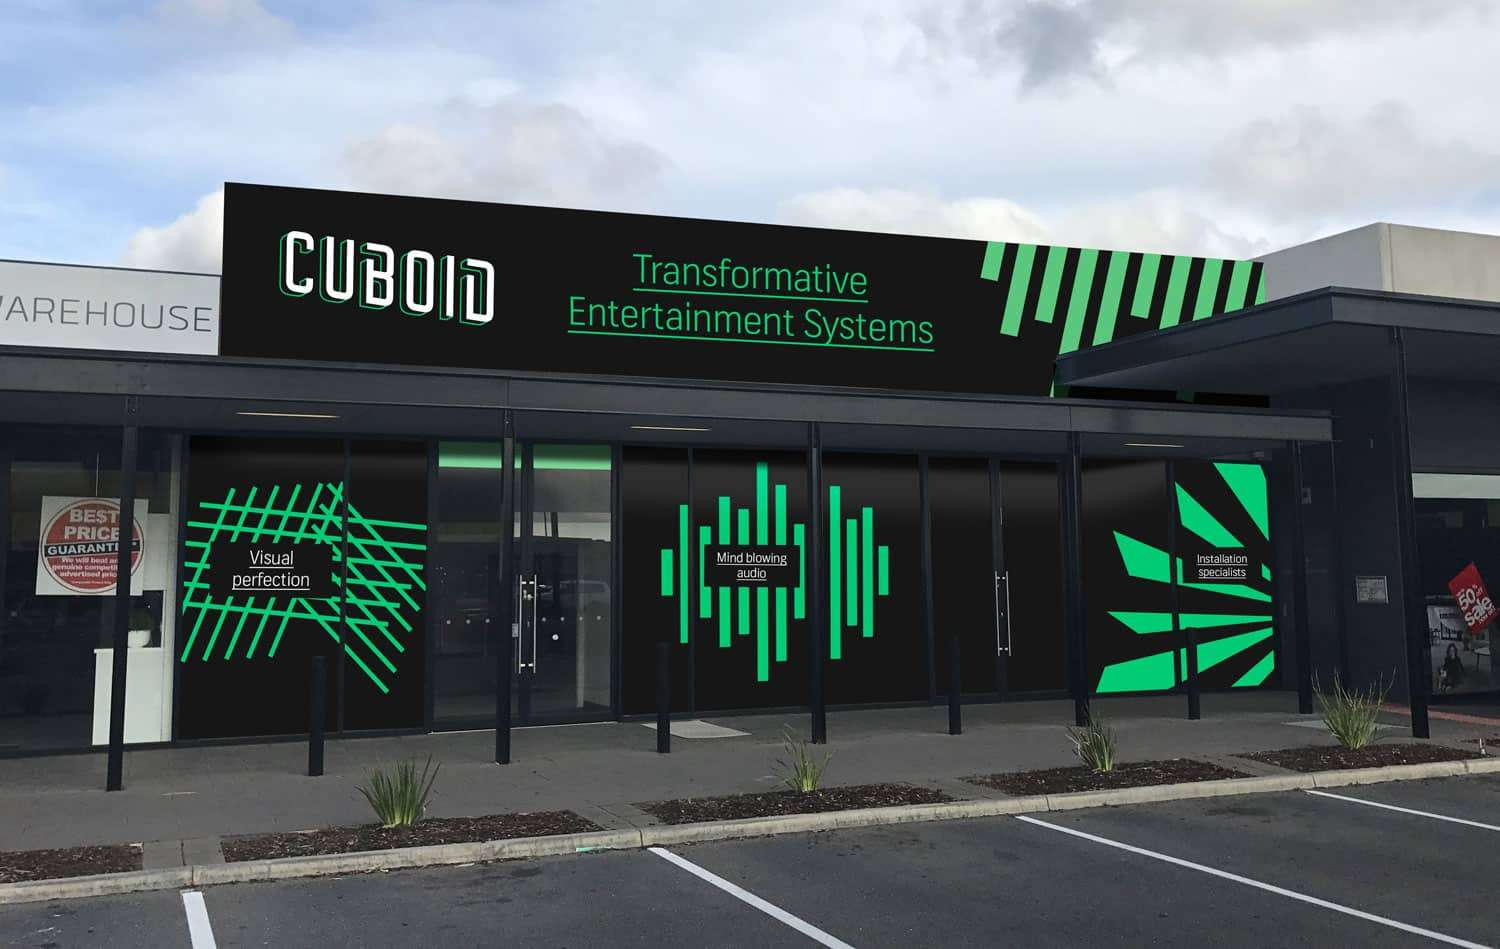 Cuboid storefront signage by Flux Visual Communication